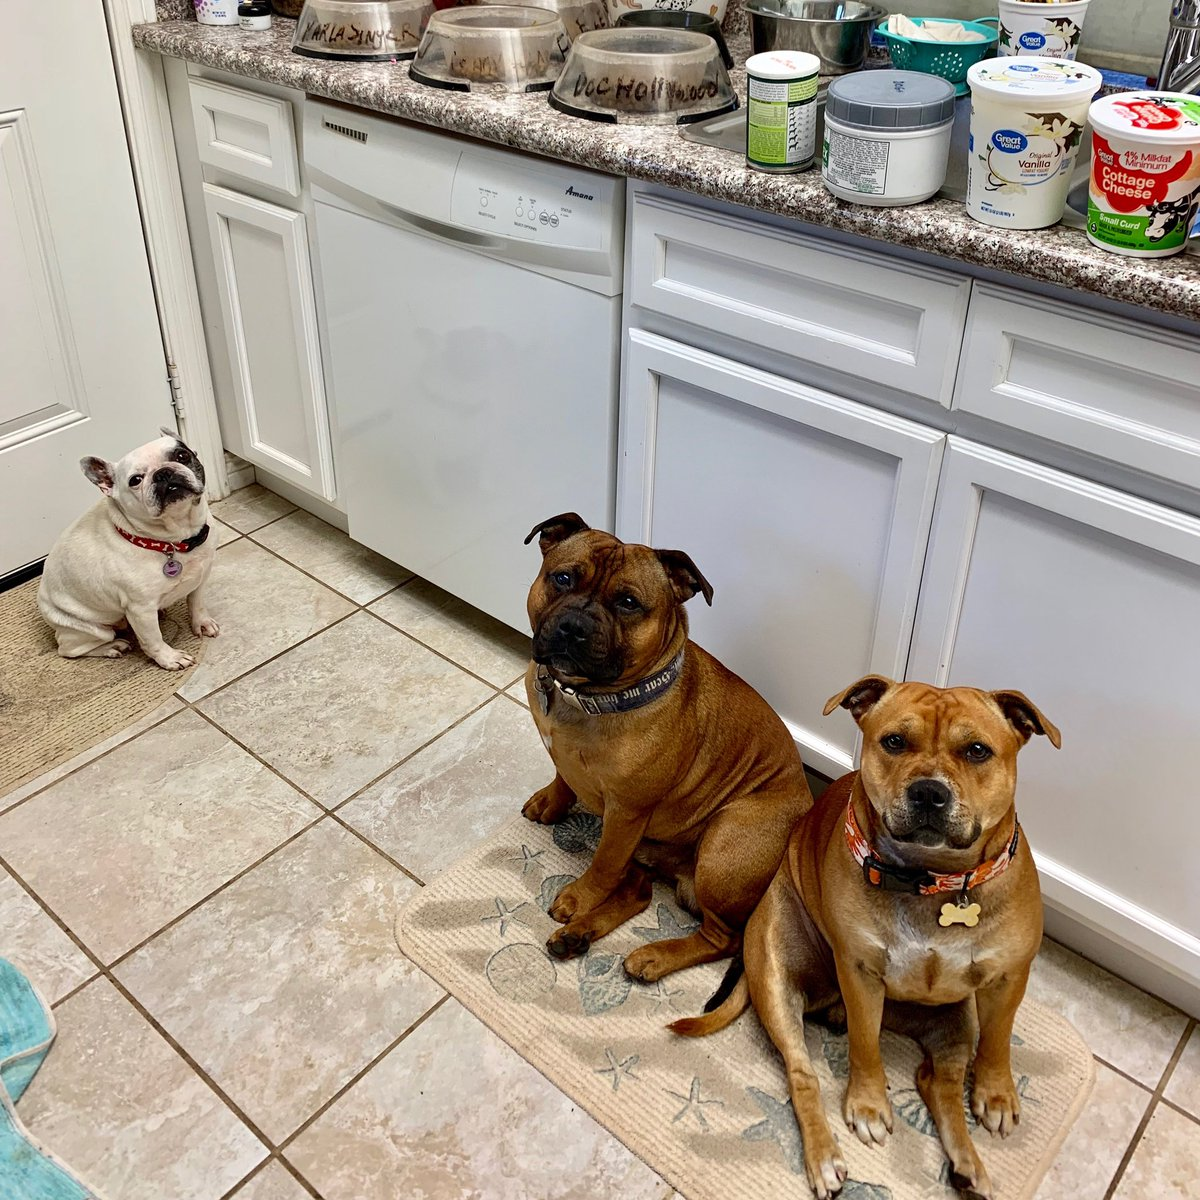 Dinner time includes an audience while I prepare. #staffordshirebullterrier #FrenchBulldog #StarvinMarvins<br>http://pic.twitter.com/Gu4SeWkvZl